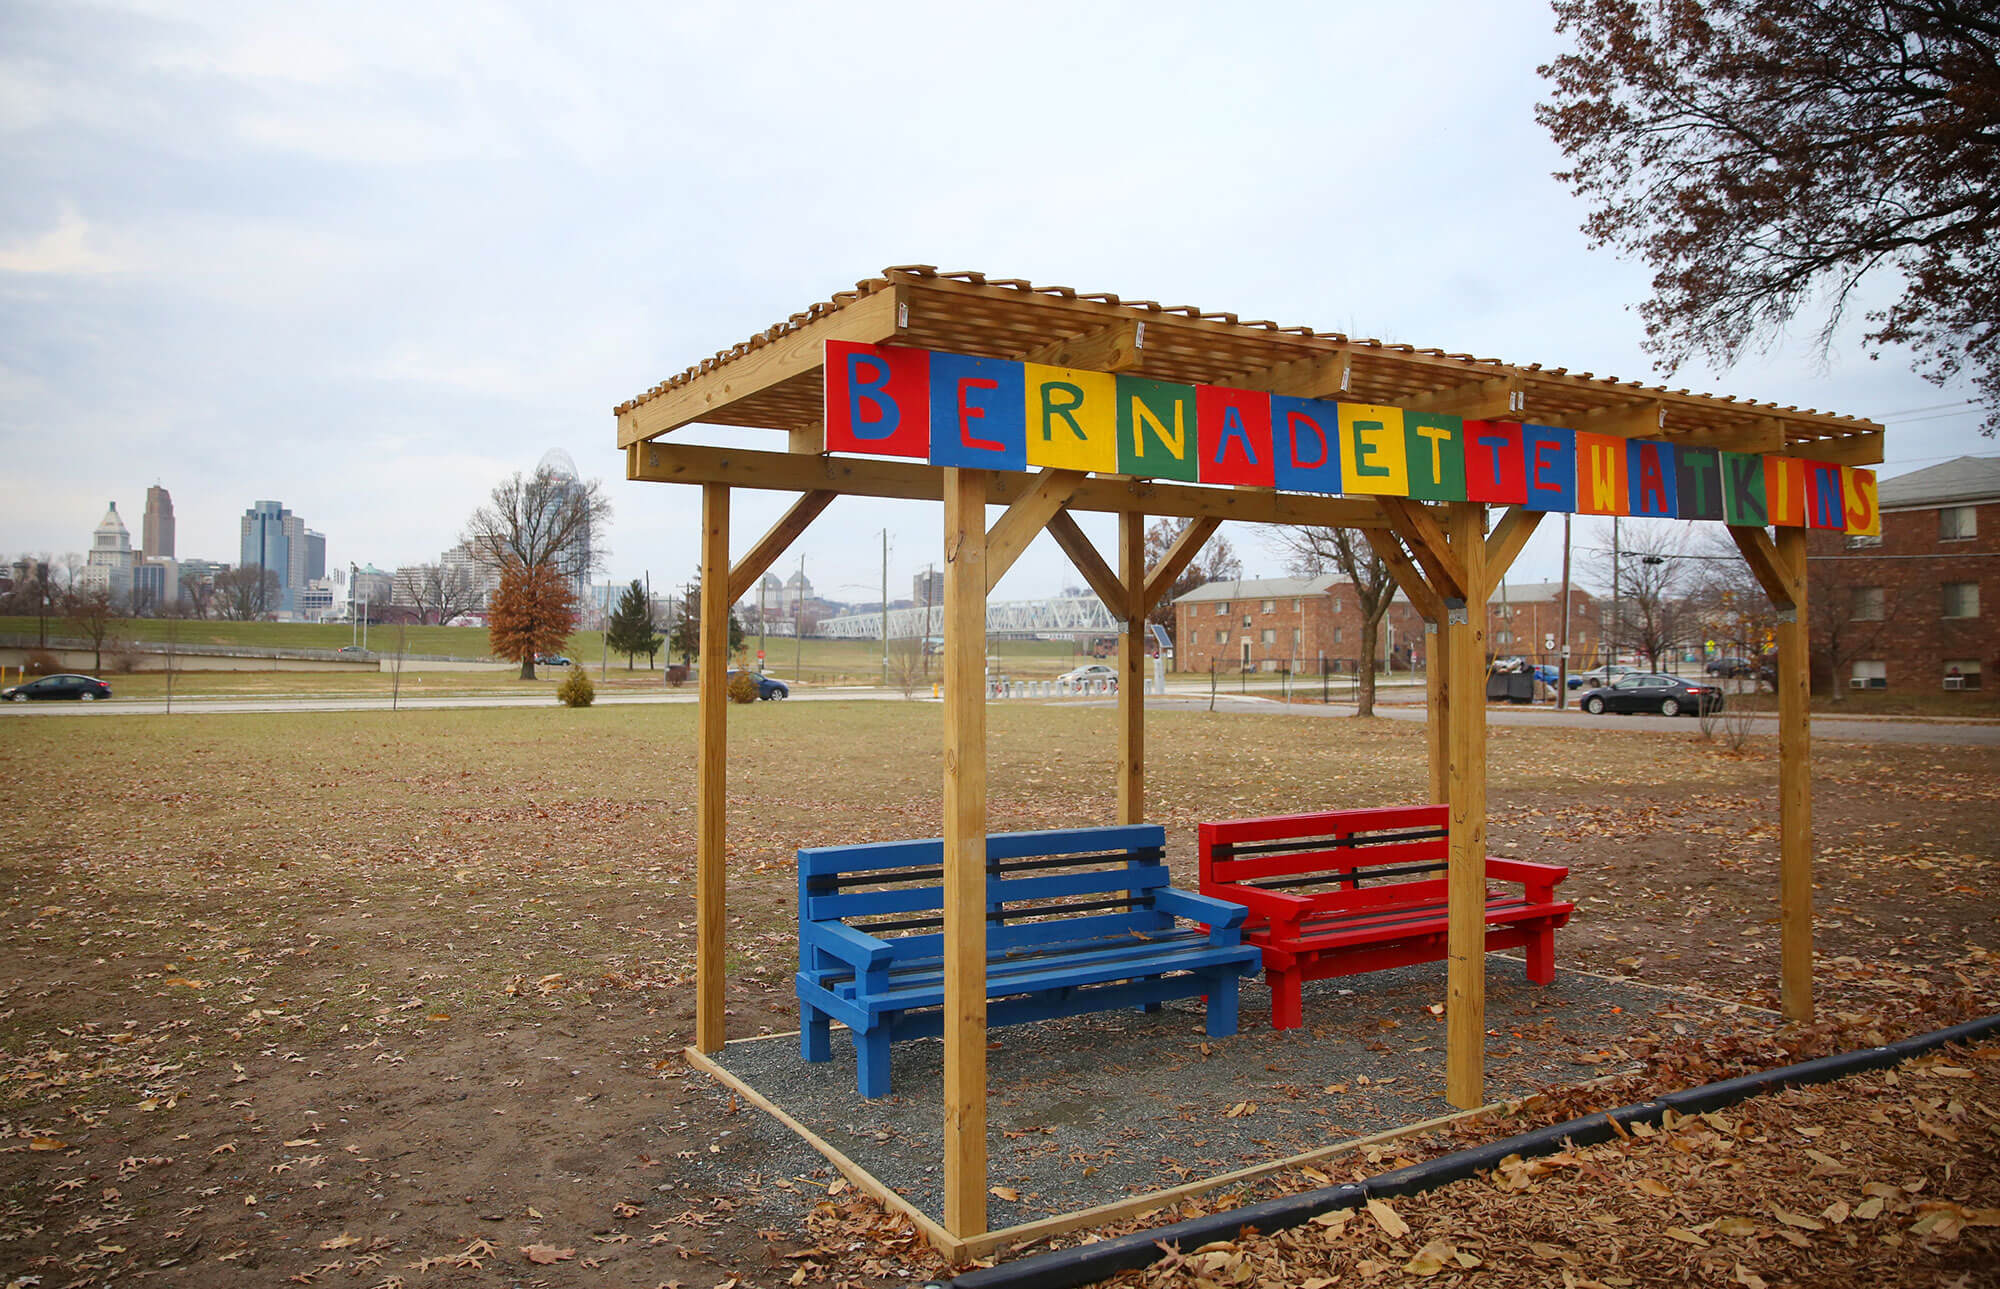 A small shelter with benches at Bernadette Watkins Park in Newport, Kentucky. (Photo by Leigh Taylor/Eye on Ohio)